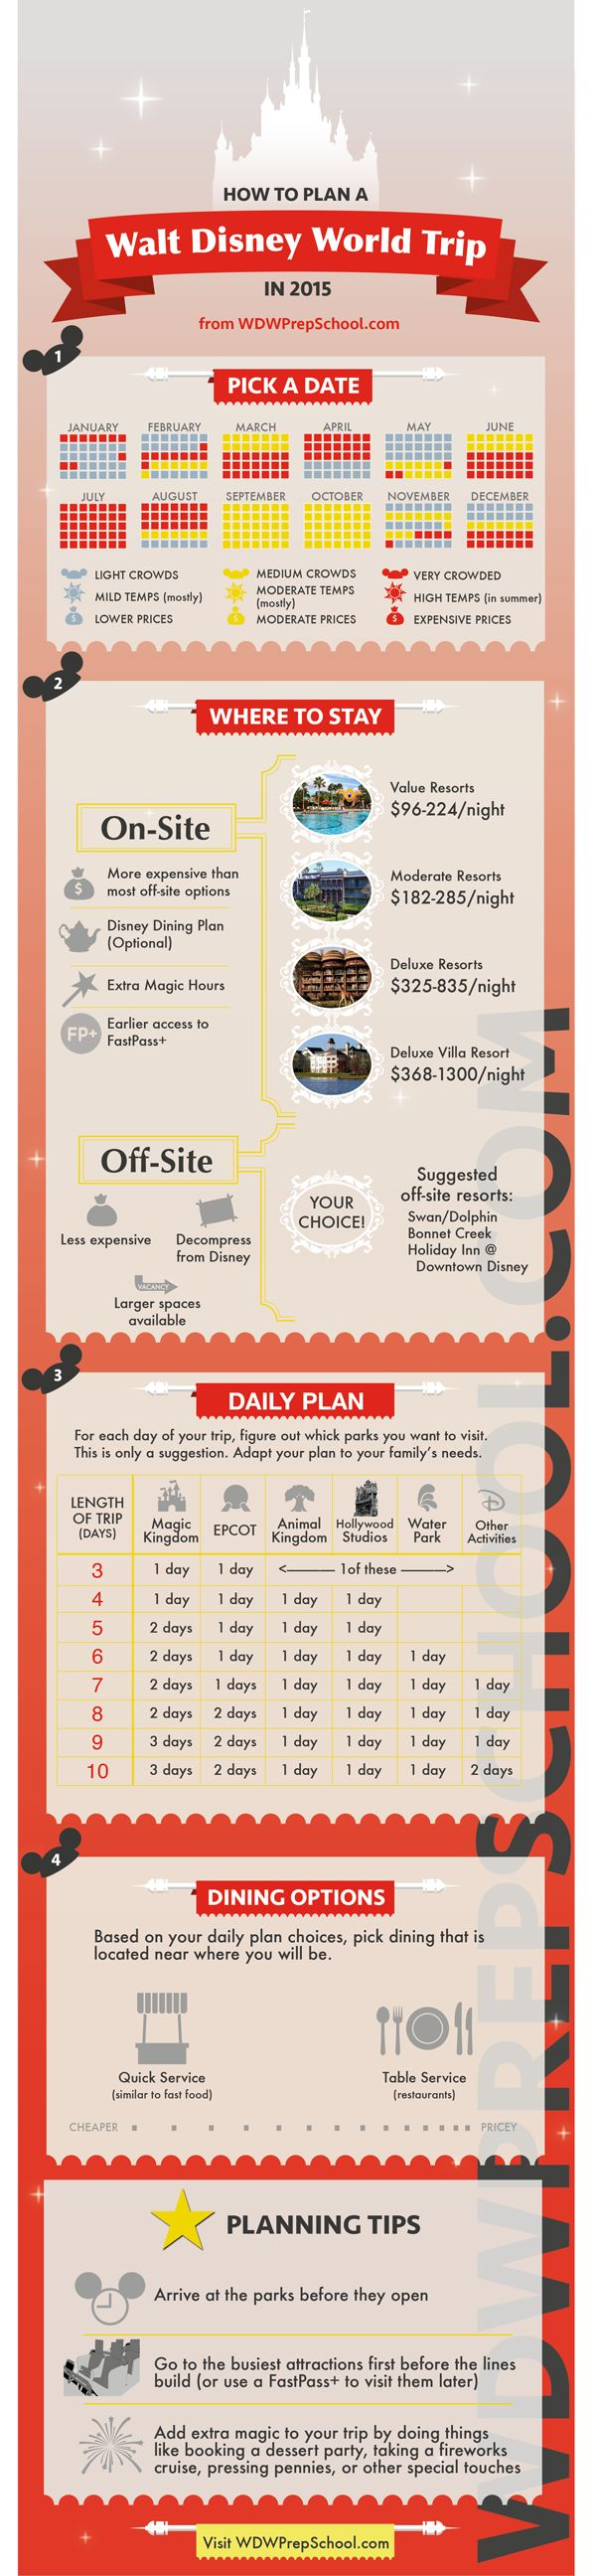 Infographic: how to plan a Disney World trip in 2015 from WDWPrepSchool.com